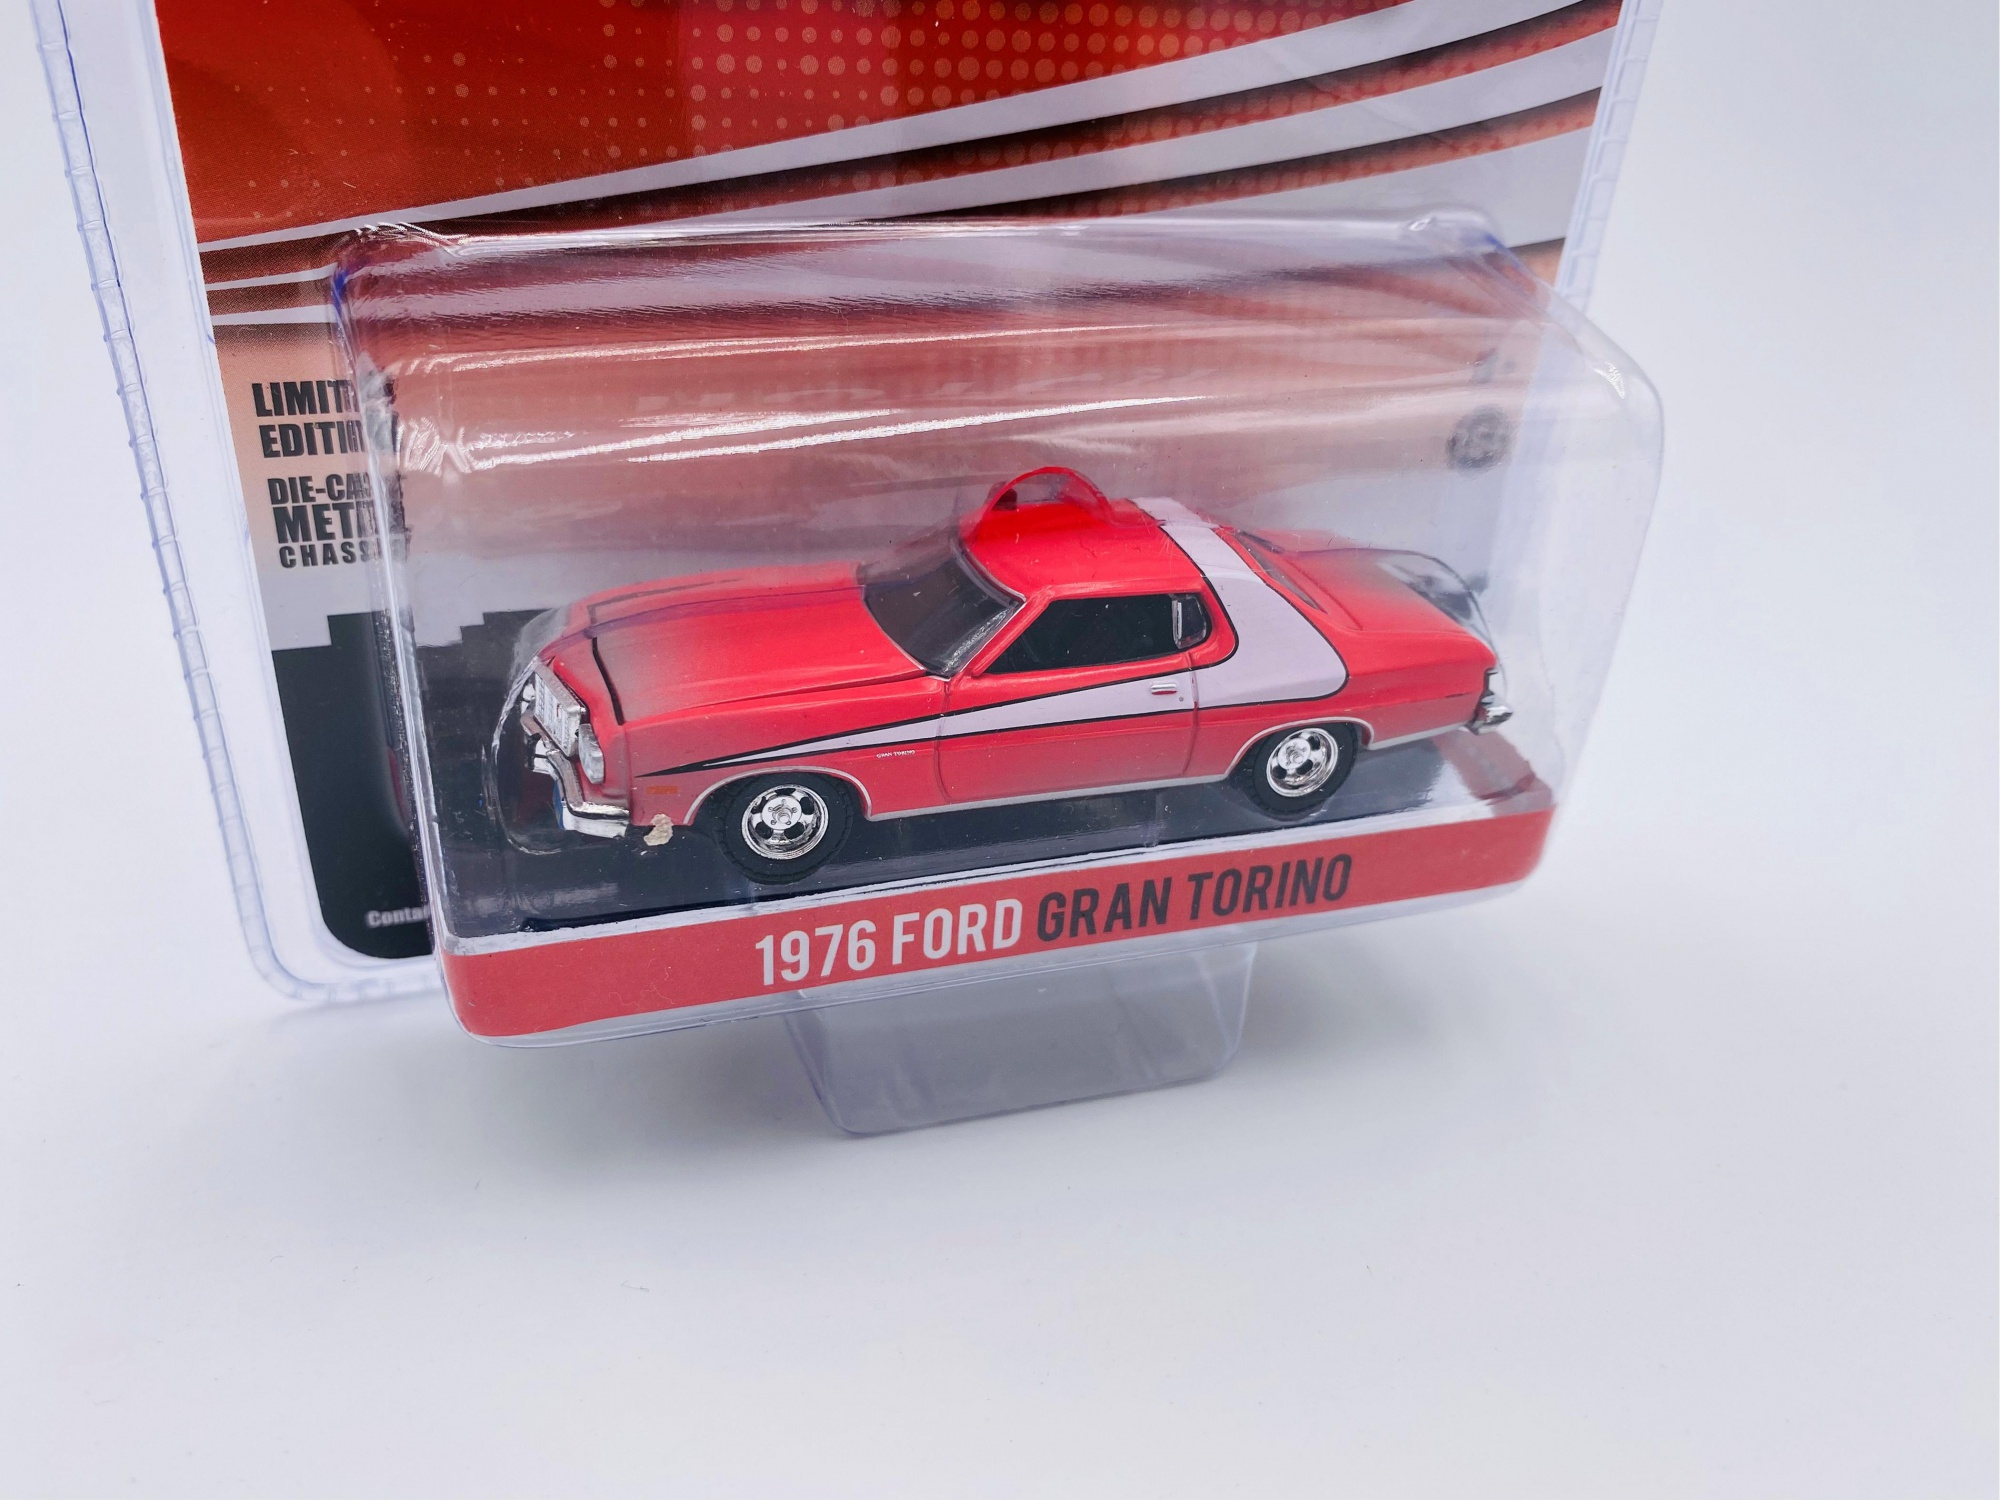 Ford Grand Torino 1976 Starsky & Hutch